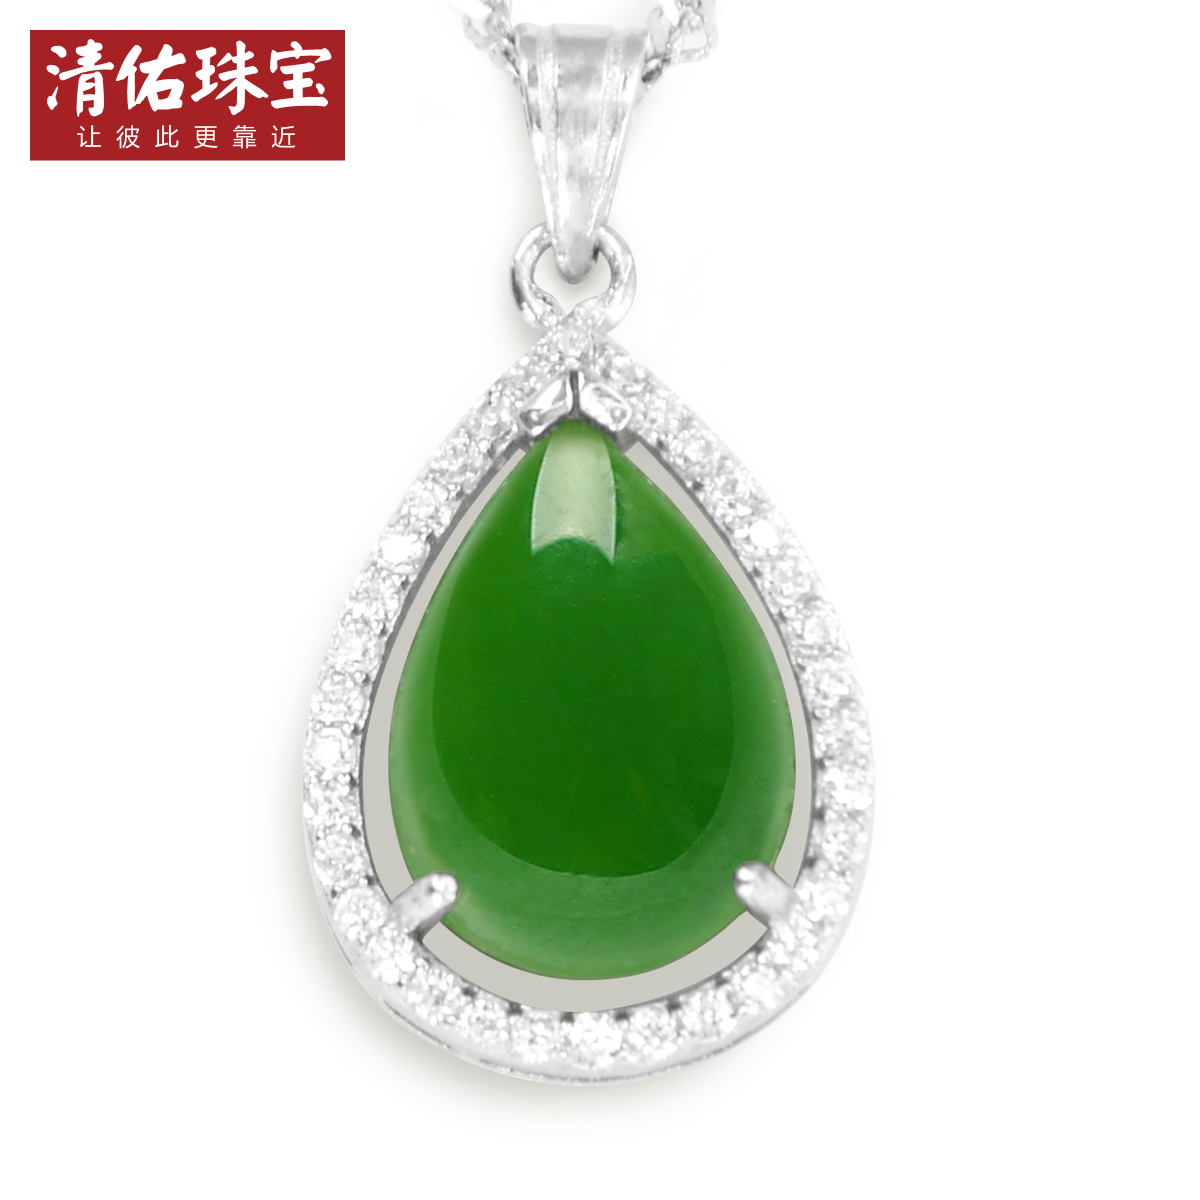 Qing yu jewelry natural and tianbi yu jasper pendant 925 silver inlaid jade jade pendant necklace female models to send his girlfriend